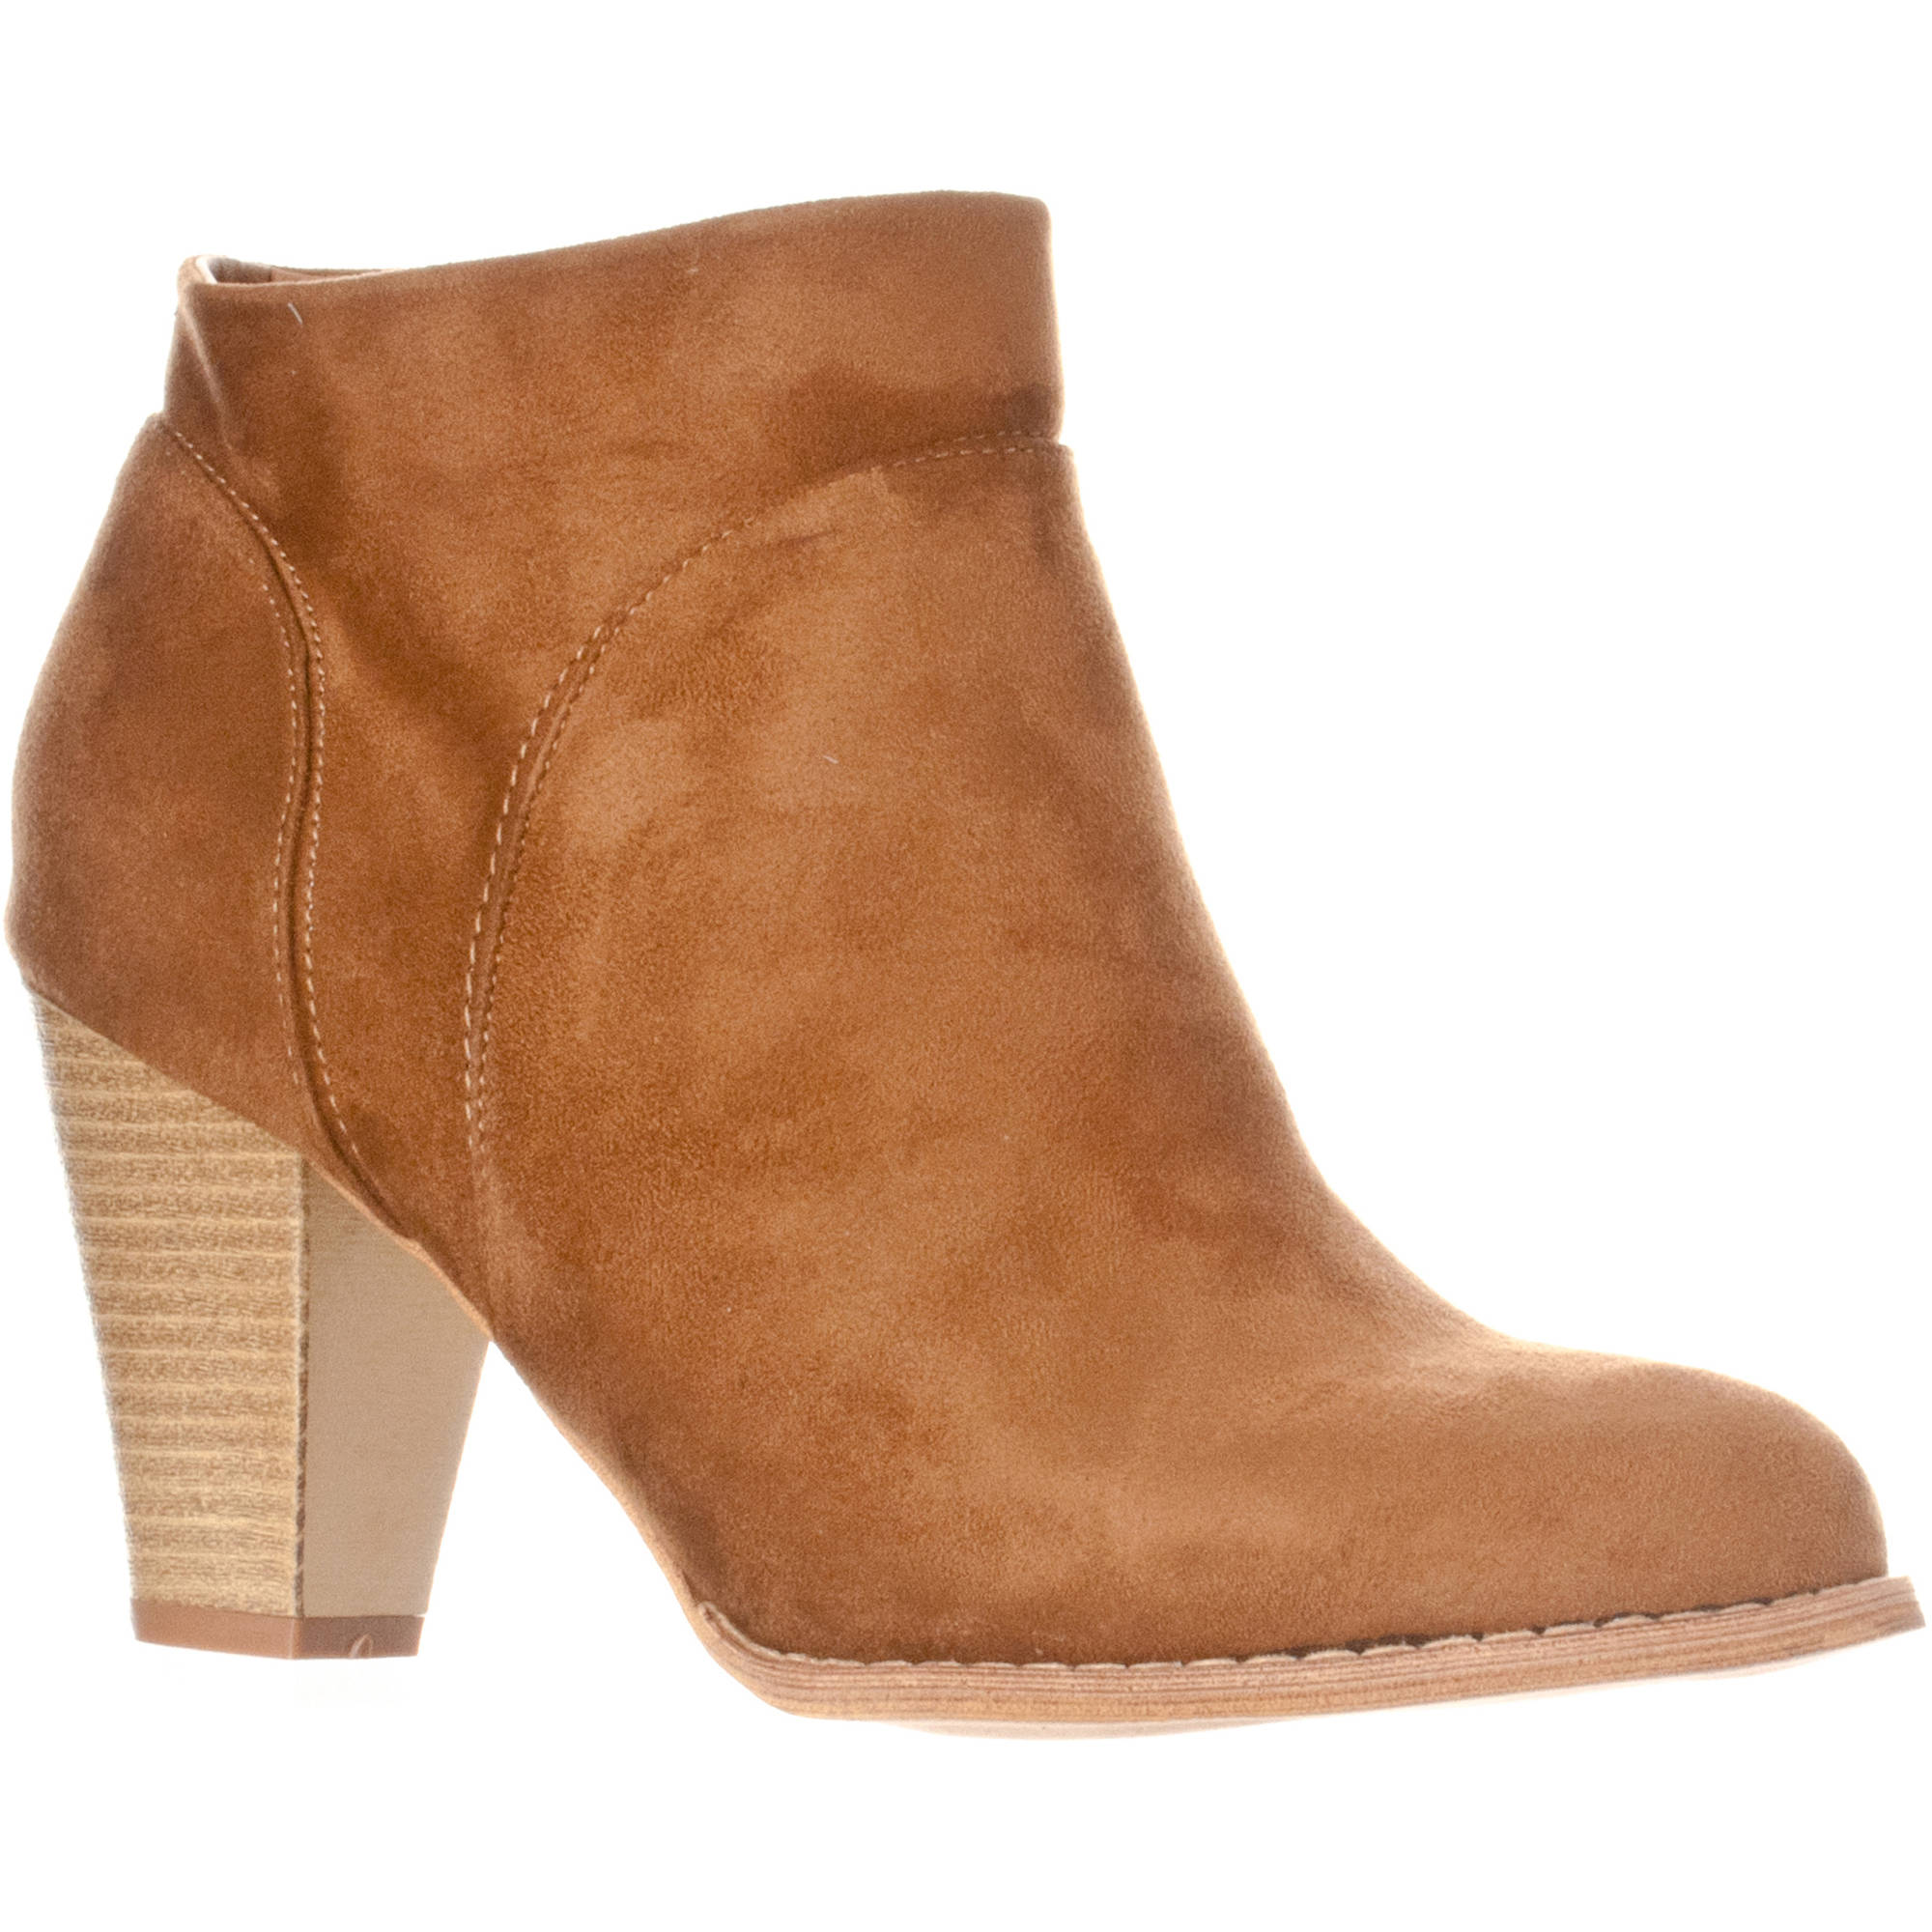 Riverberry Women's 'Chloe' Synthetic Suede Ankle Bootie